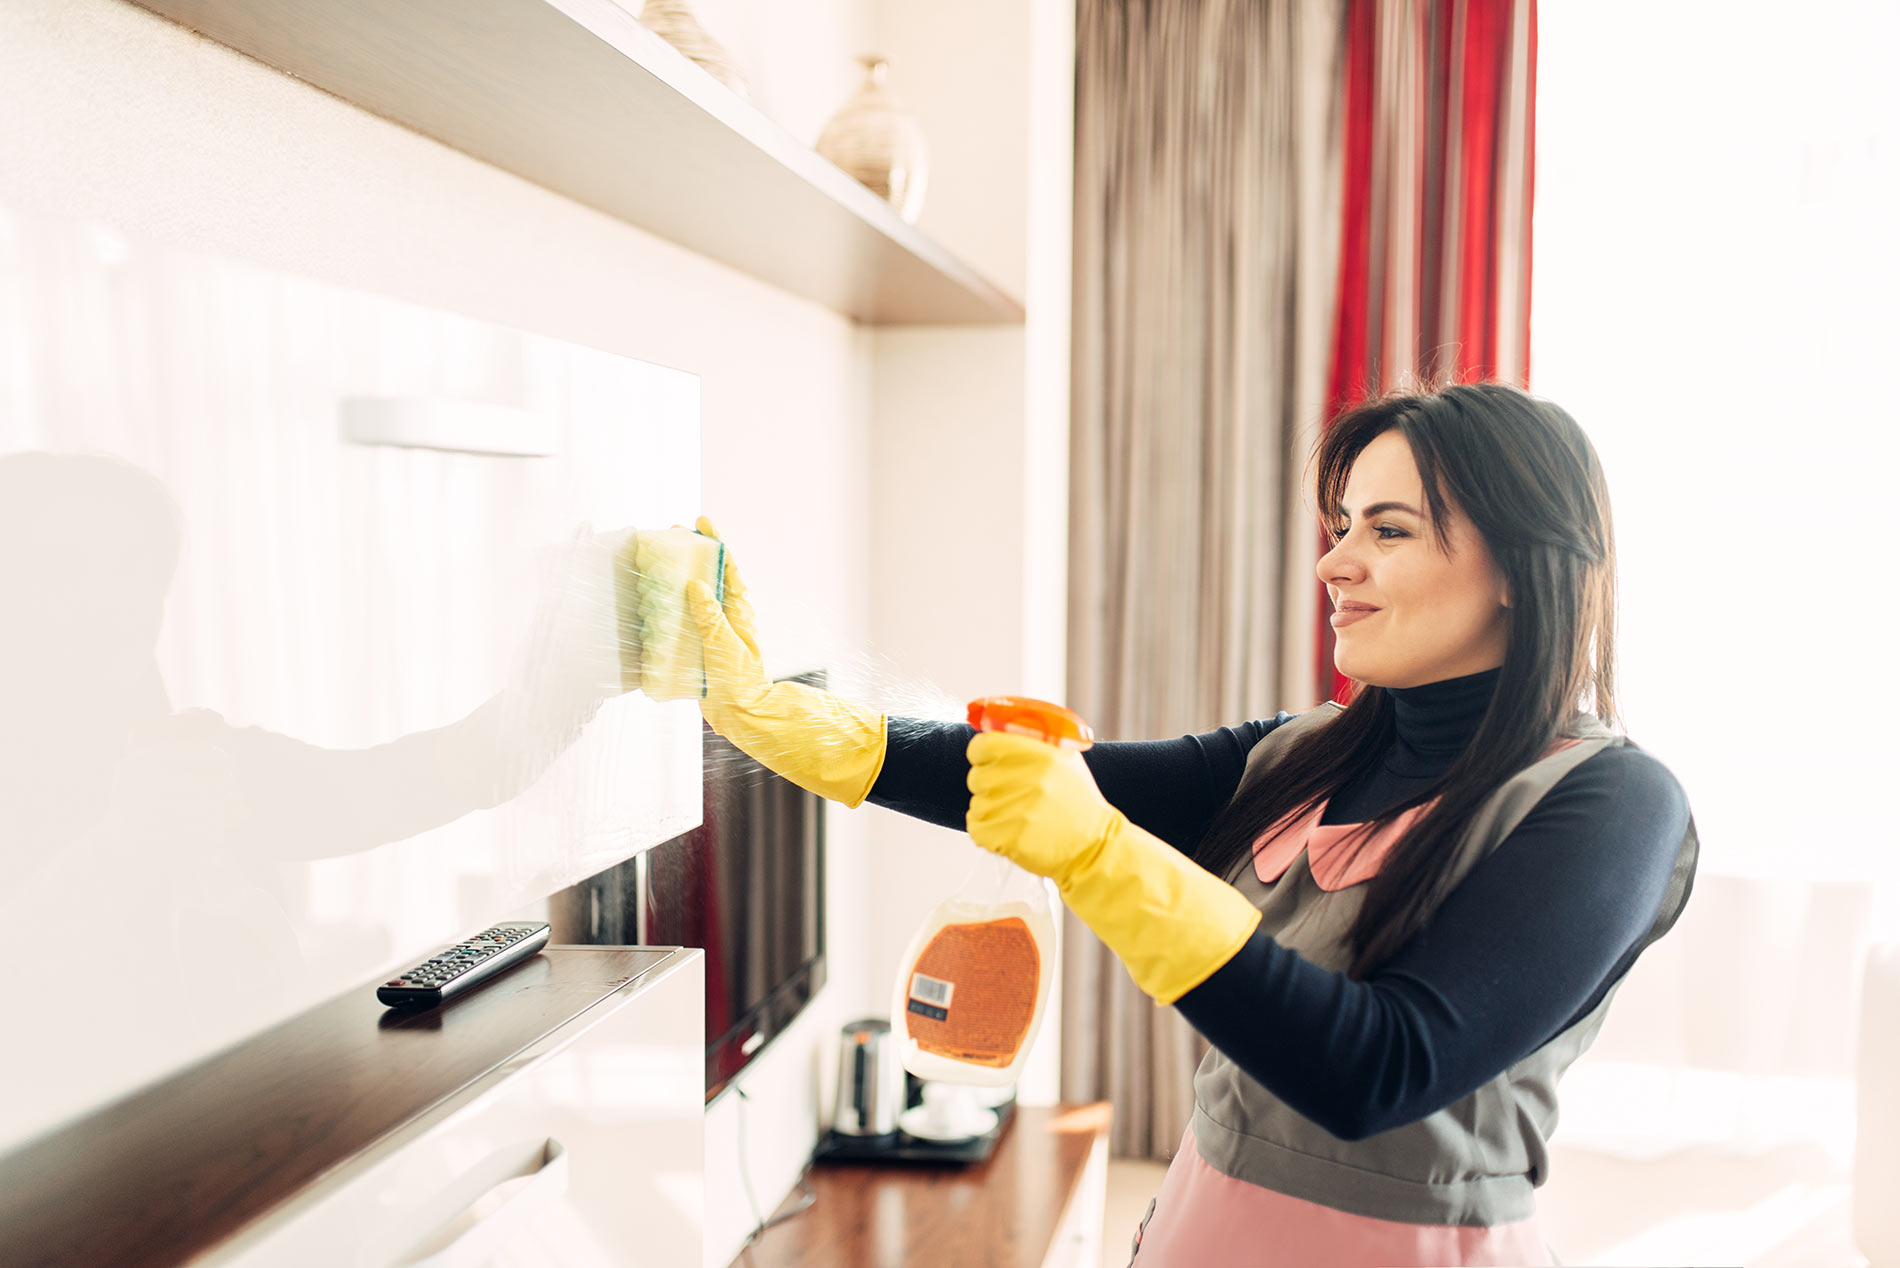 housemaid-cleans-furniture-with-a-cleaning-spray-H2NMVYK.jpg